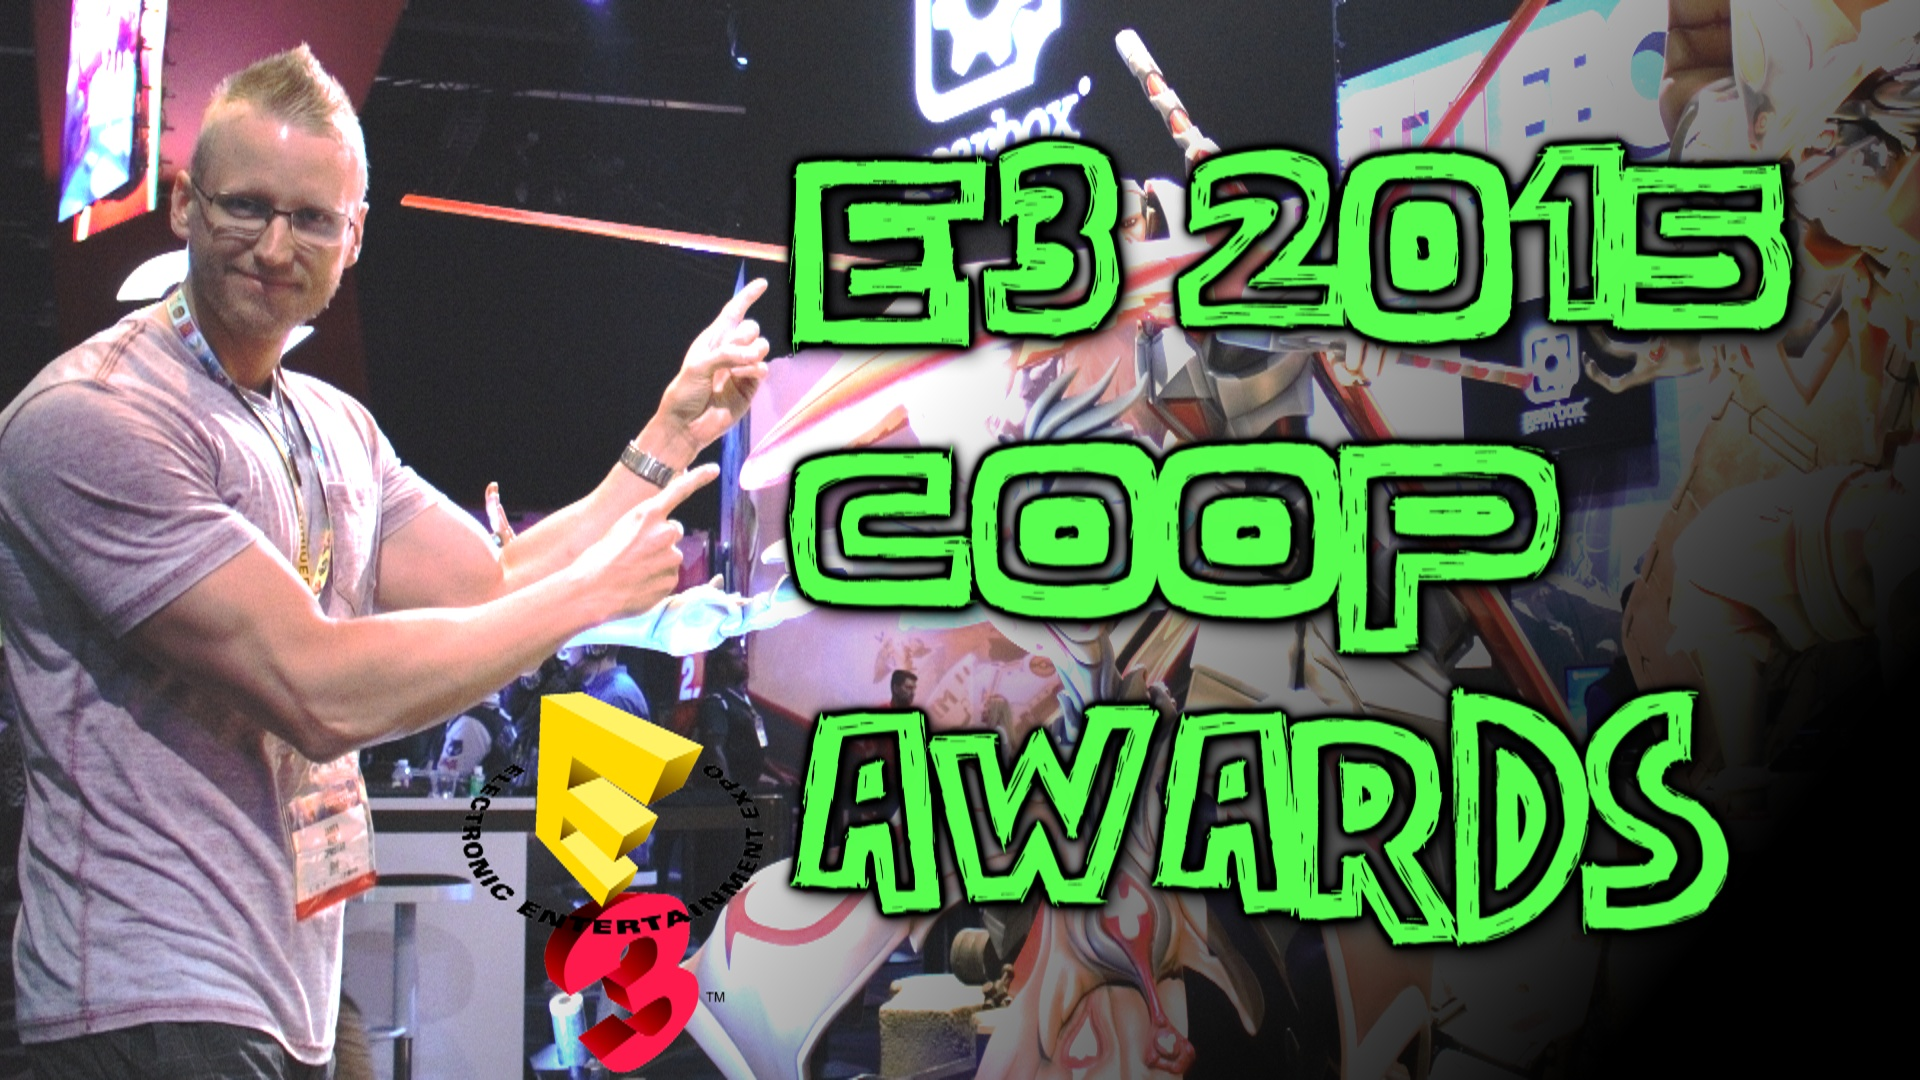 E3 2015 Coop Awards MMOHuts